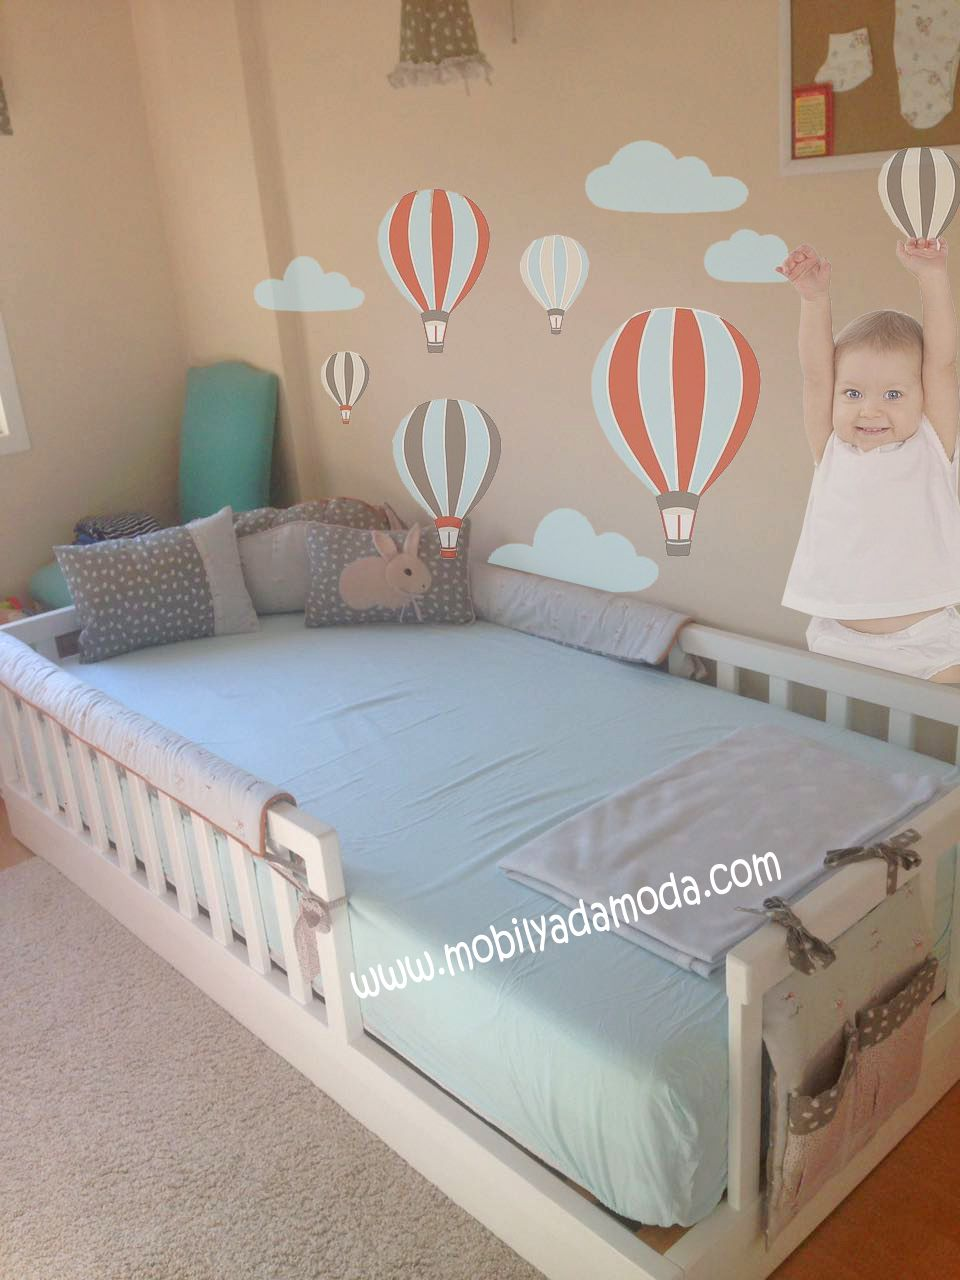 Bed idea creepy baby lol kizi - Baby jungenzimmer ...